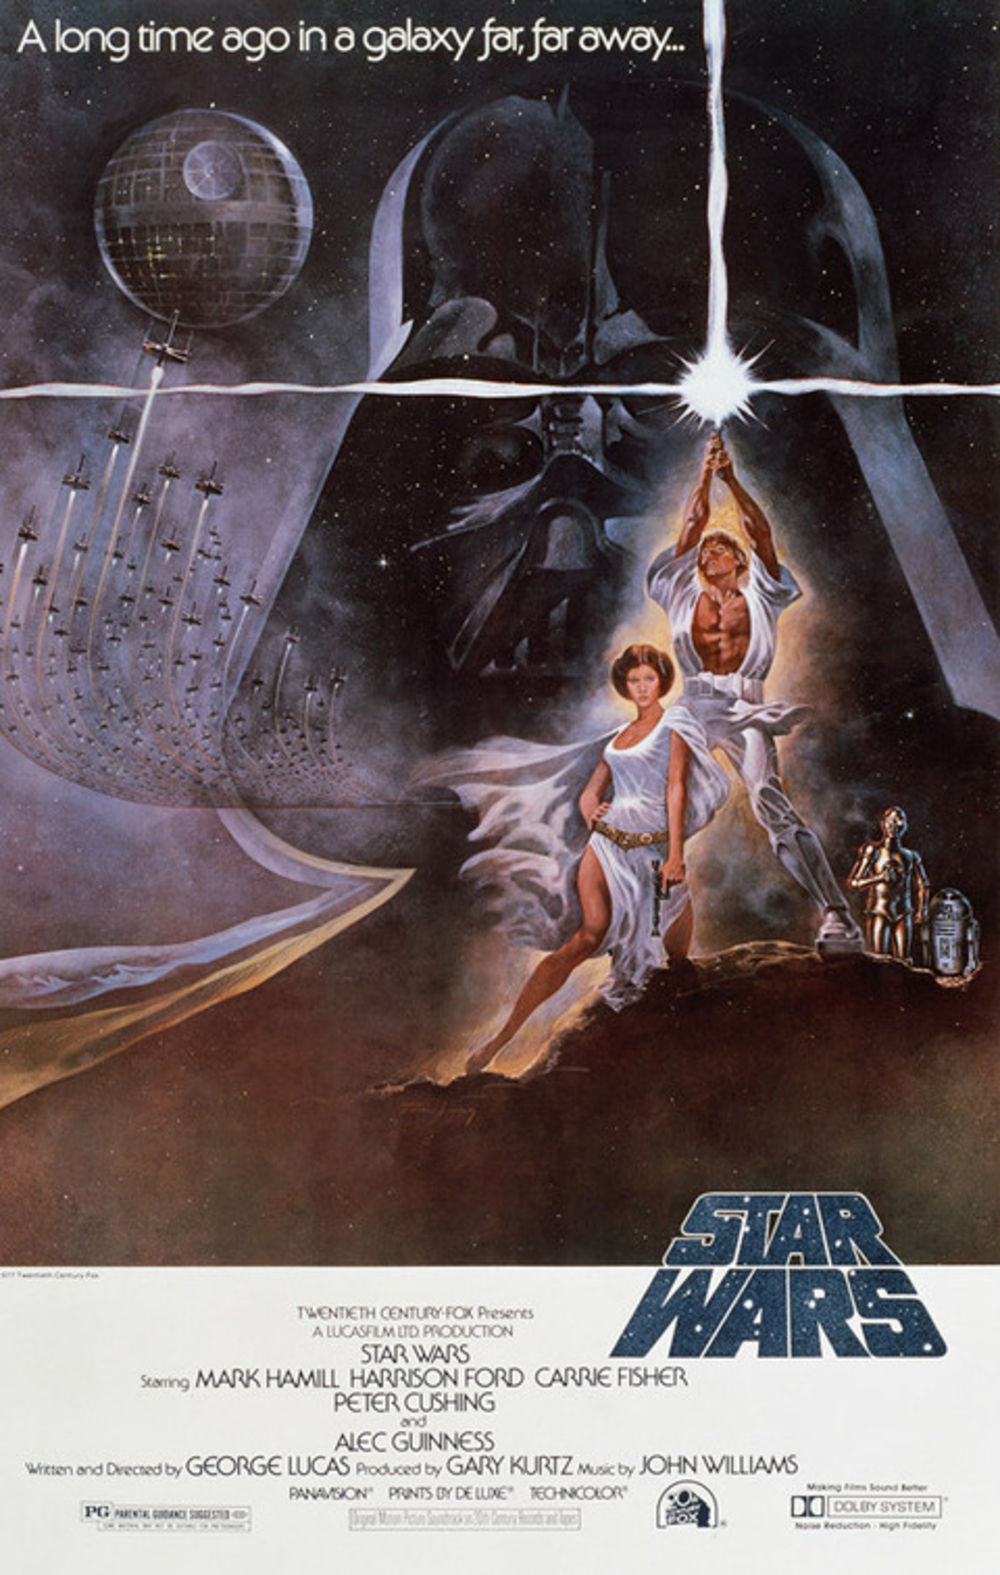 Star Wars Episodio IV A New Hope 1977